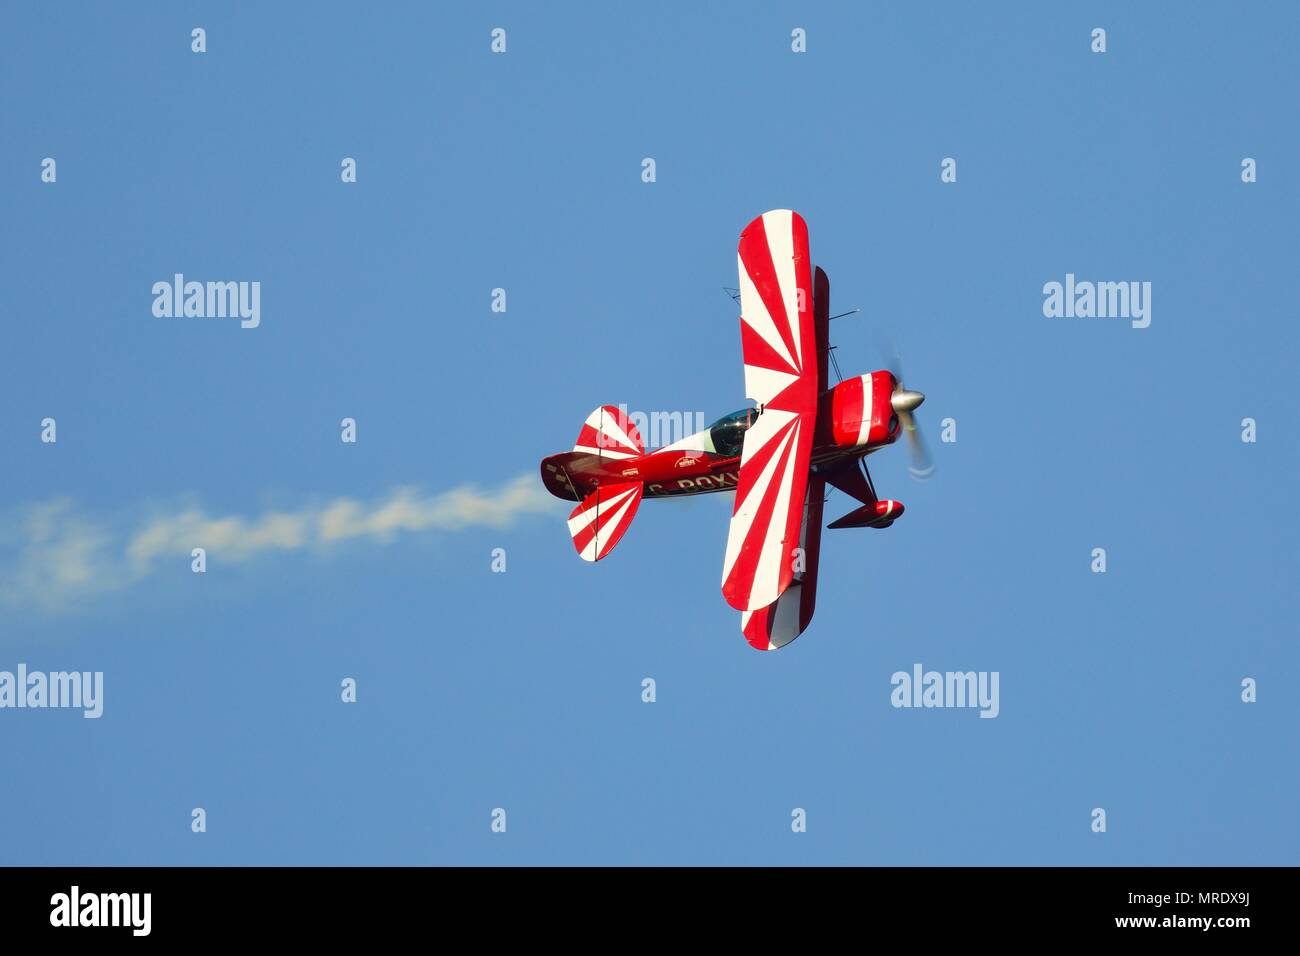 Pitts Special Aerobatic Biplane Performing A Fast And Exciting